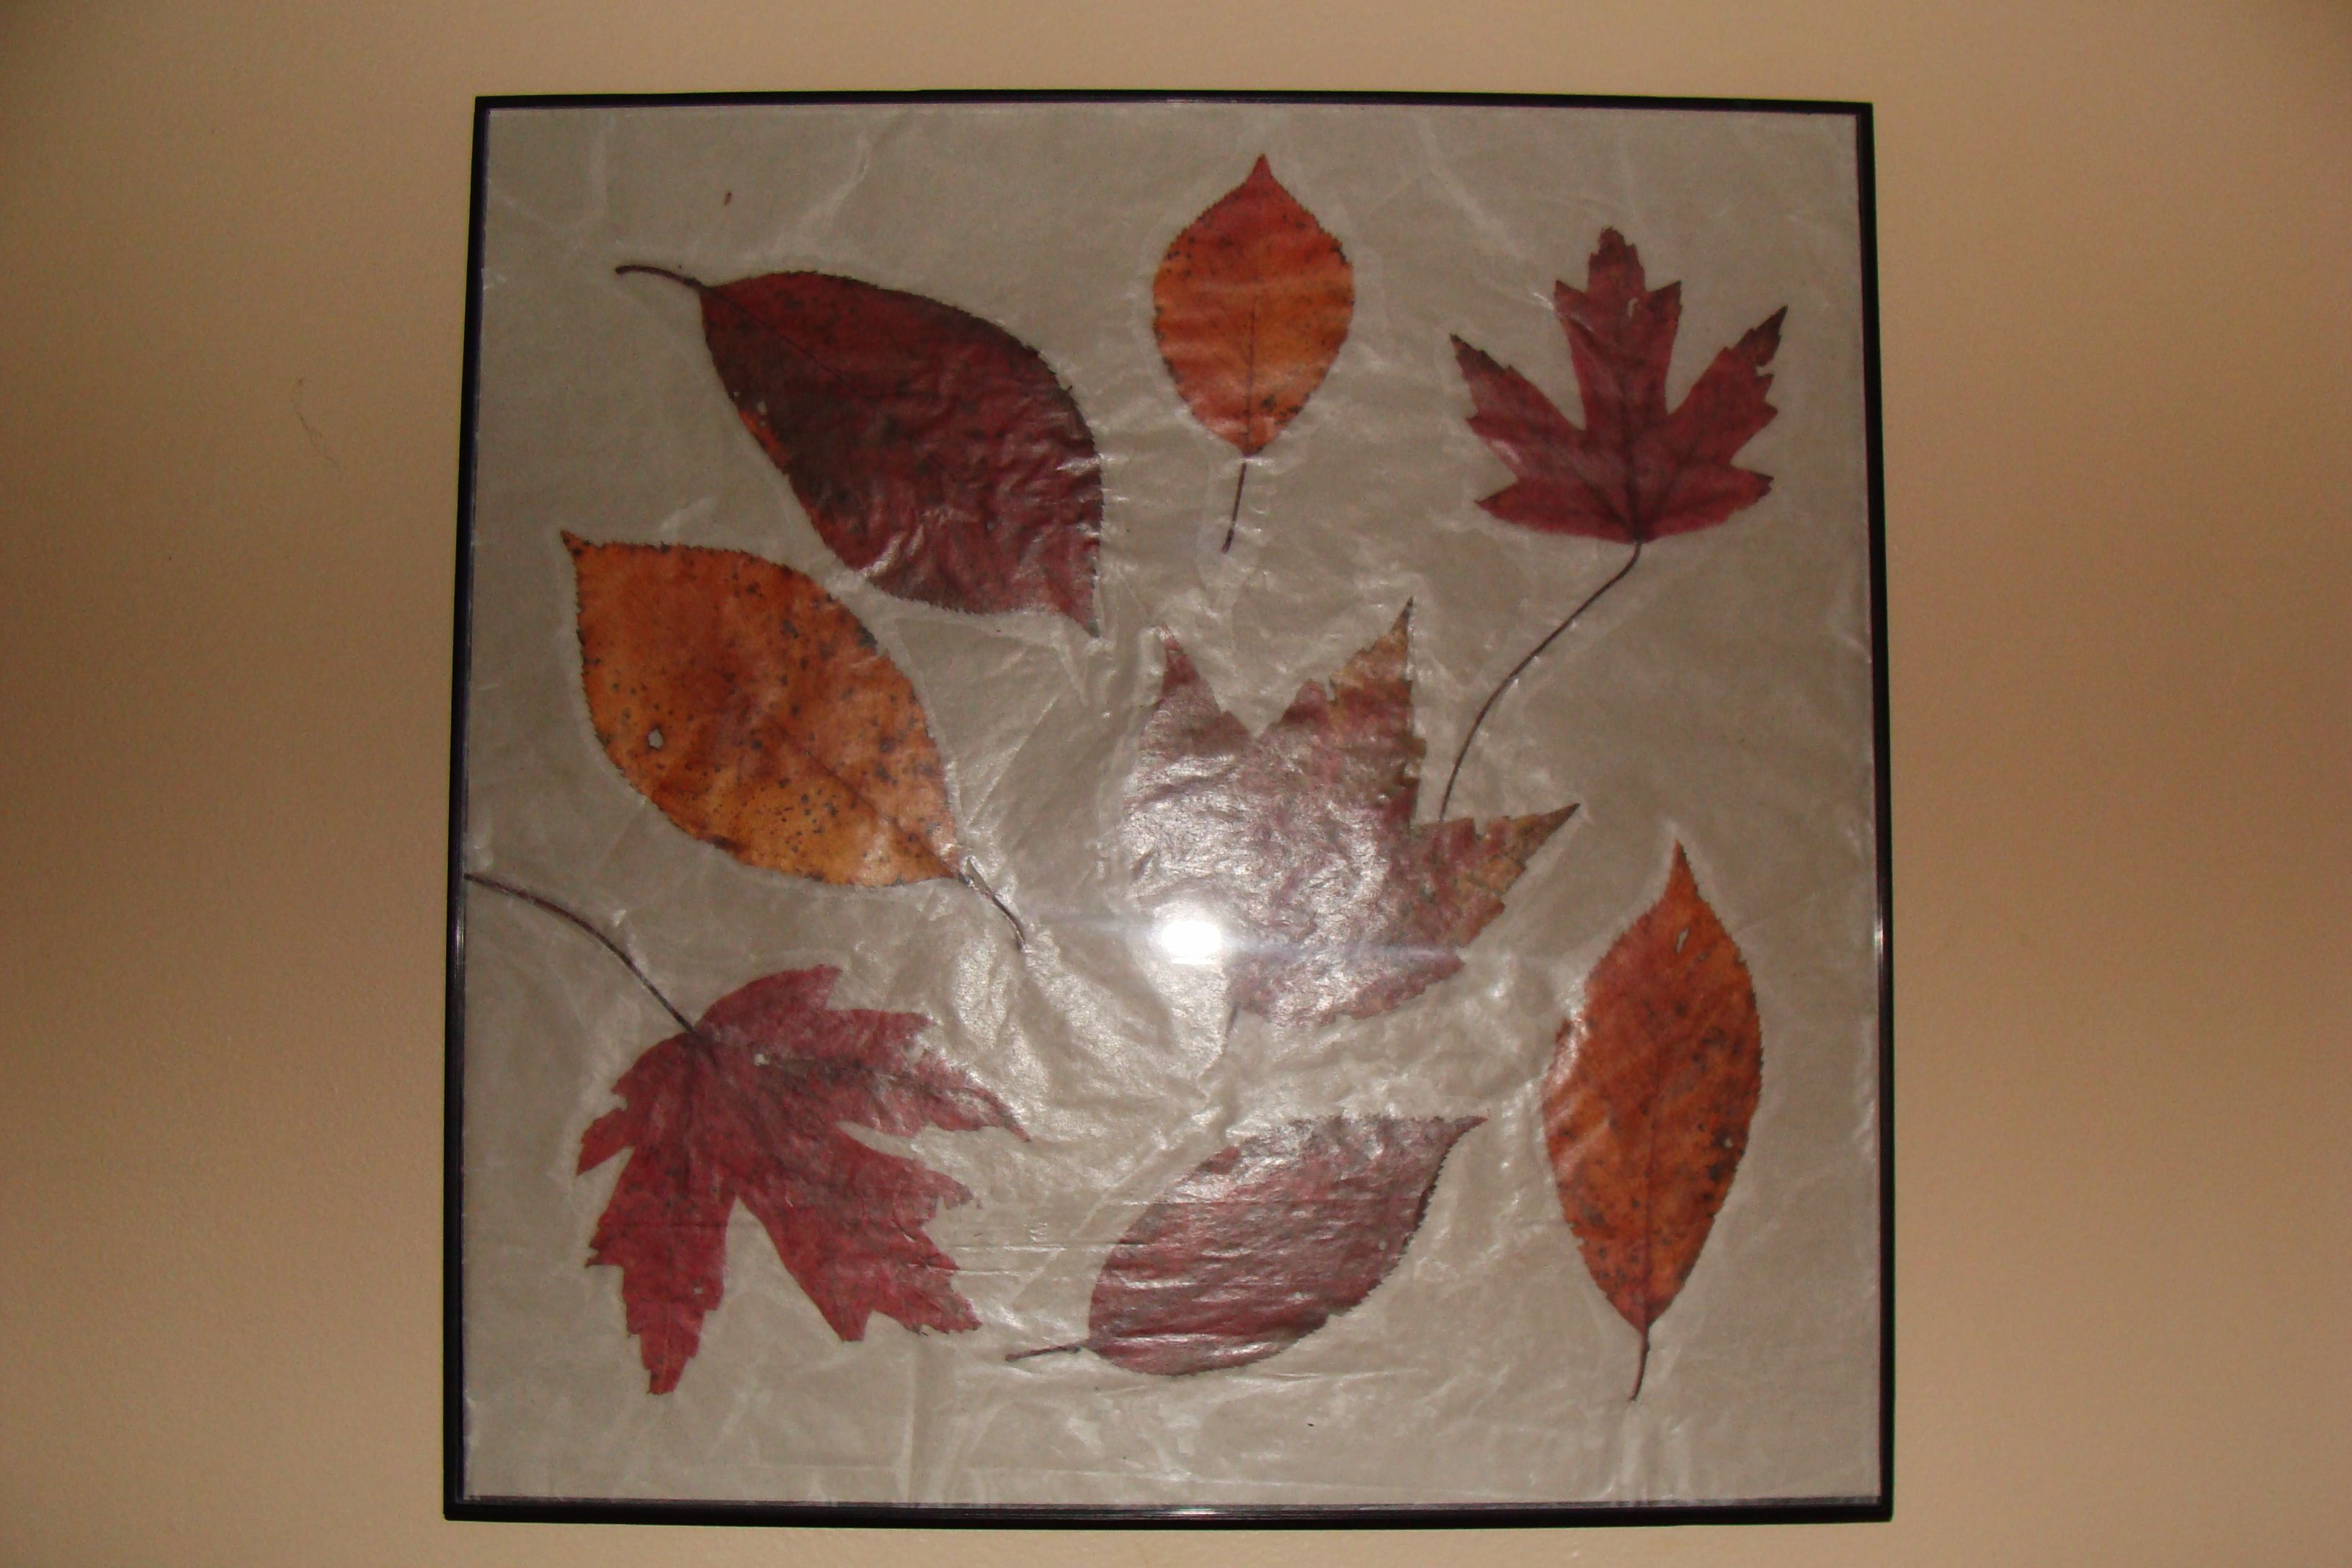 26++ Wax paper crafts with leaves ideas in 2021